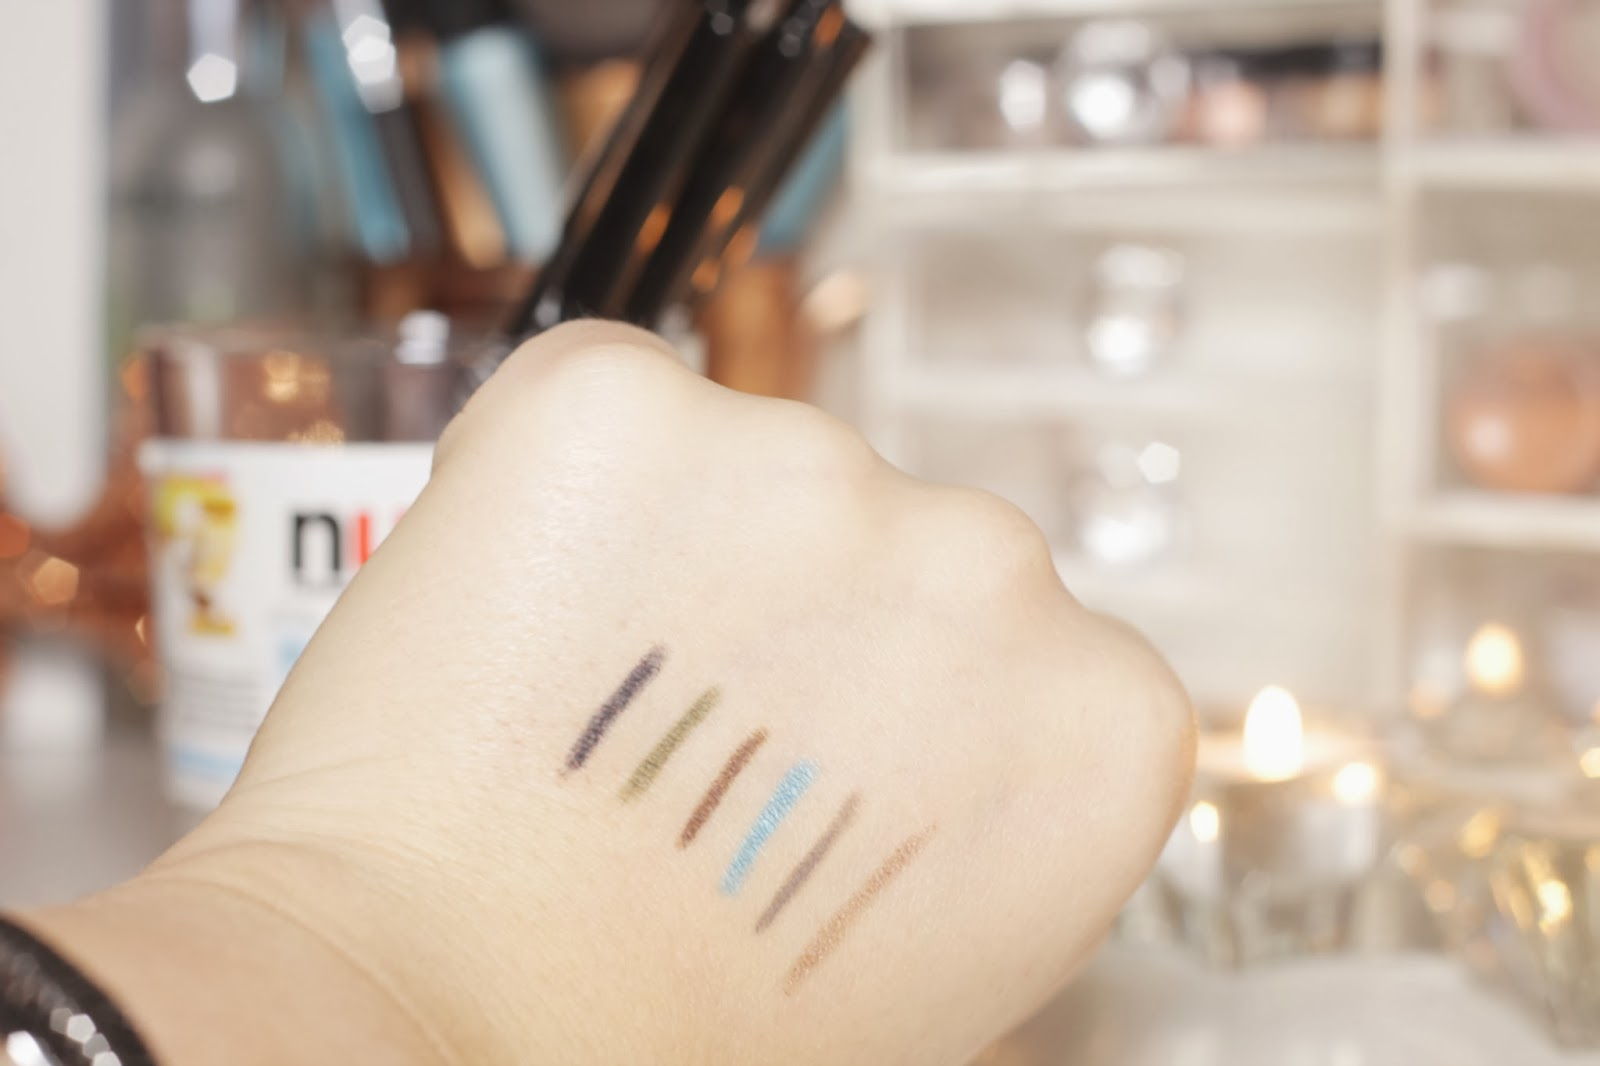 lord-&-berry-smudgeproof-eyeliners-review-swatch